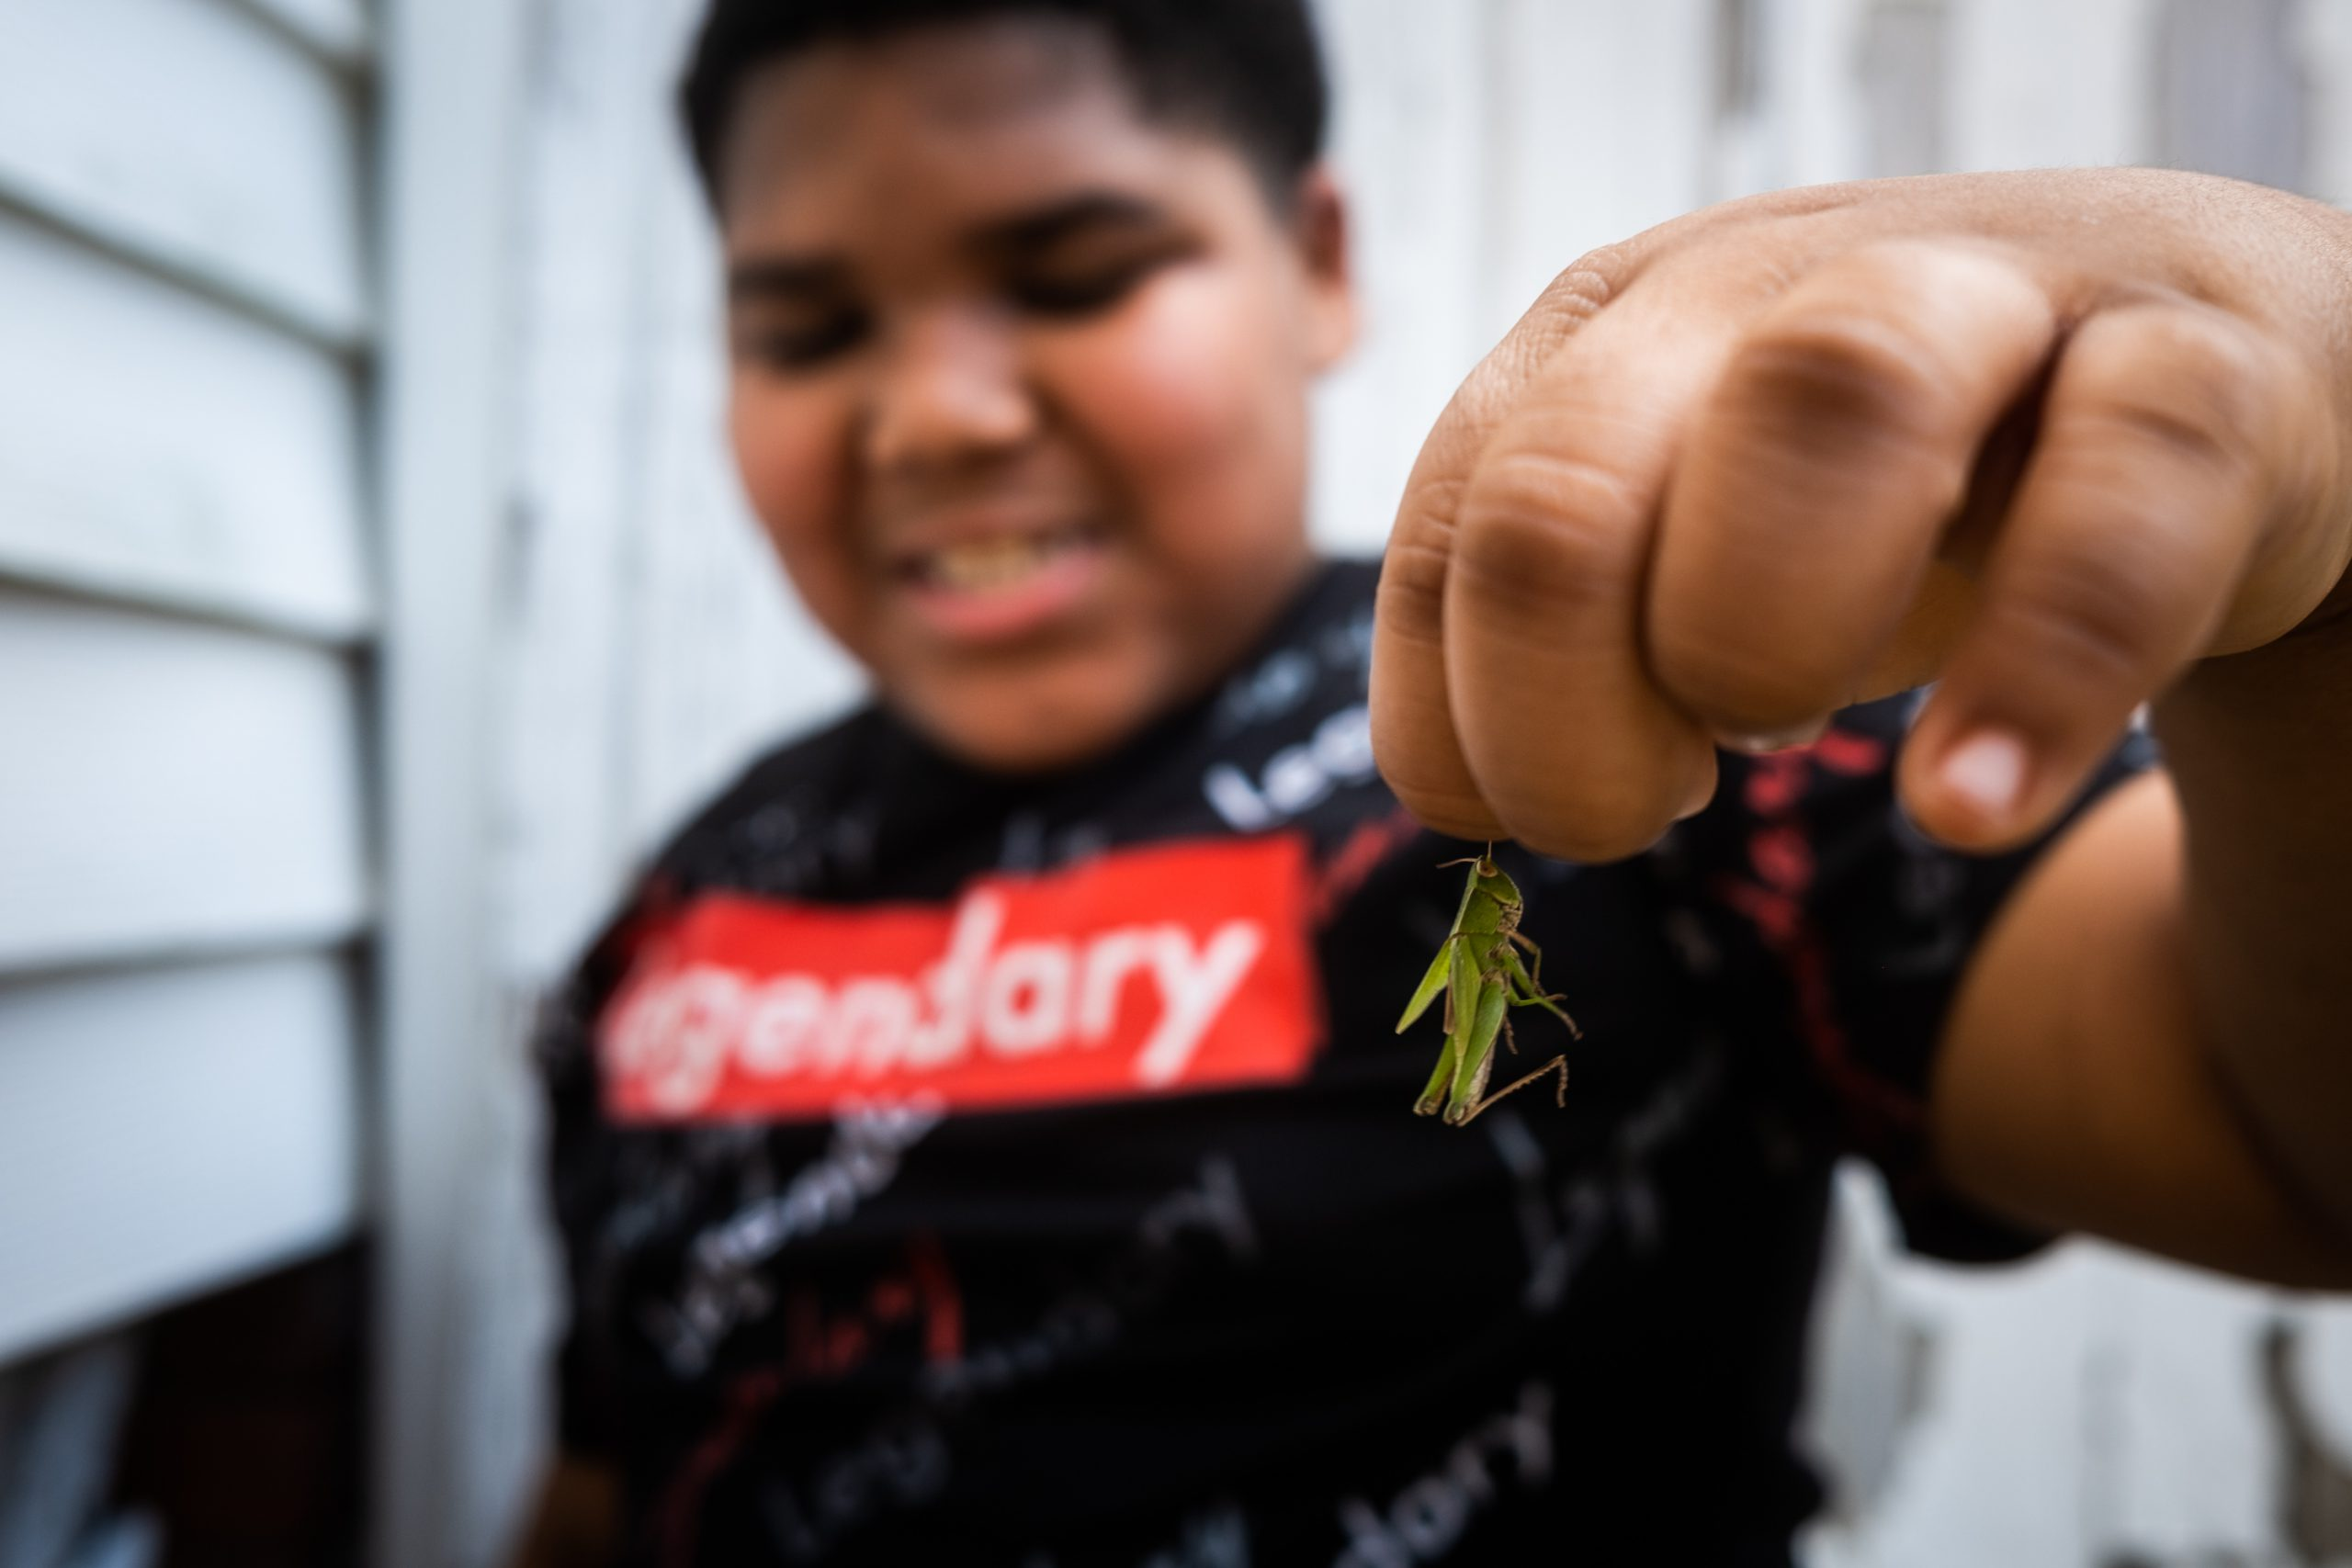 A young boy holds a grasshopper